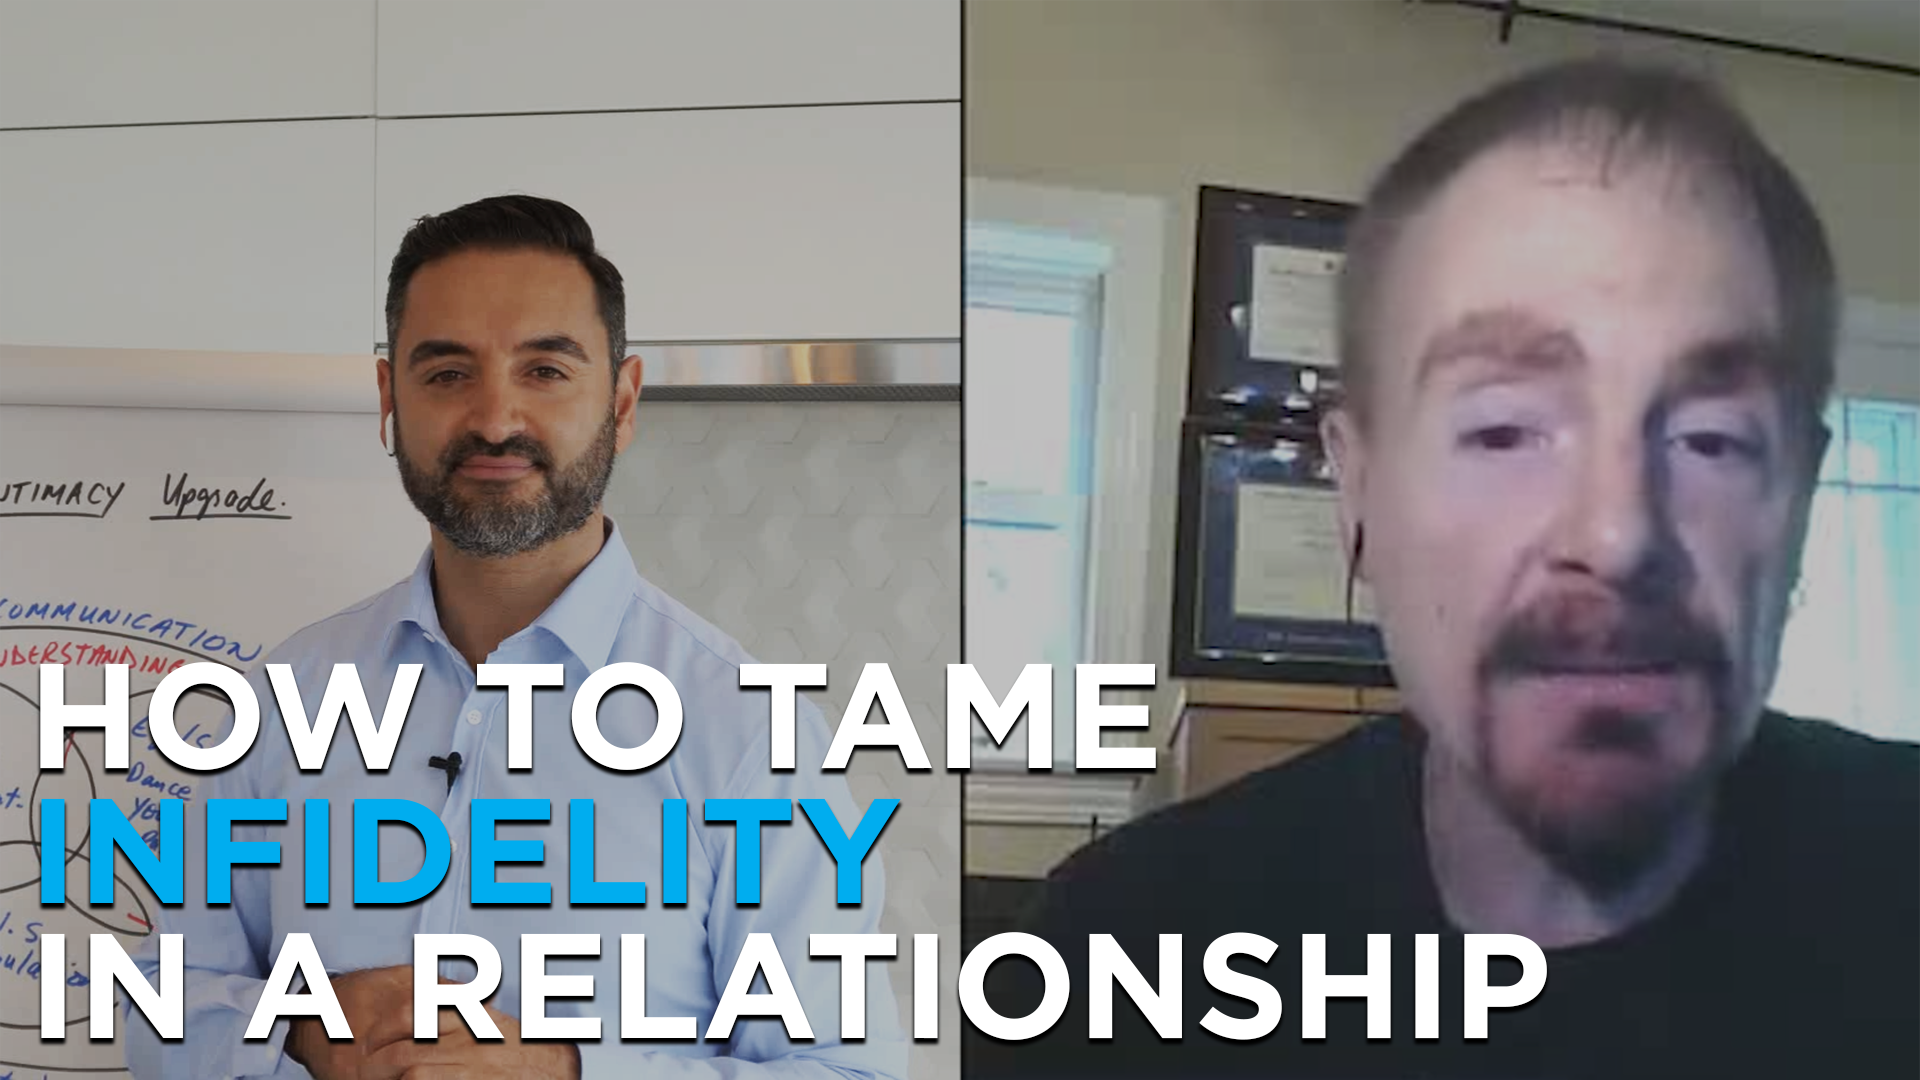 How to Tame Infidelity in a Relationship